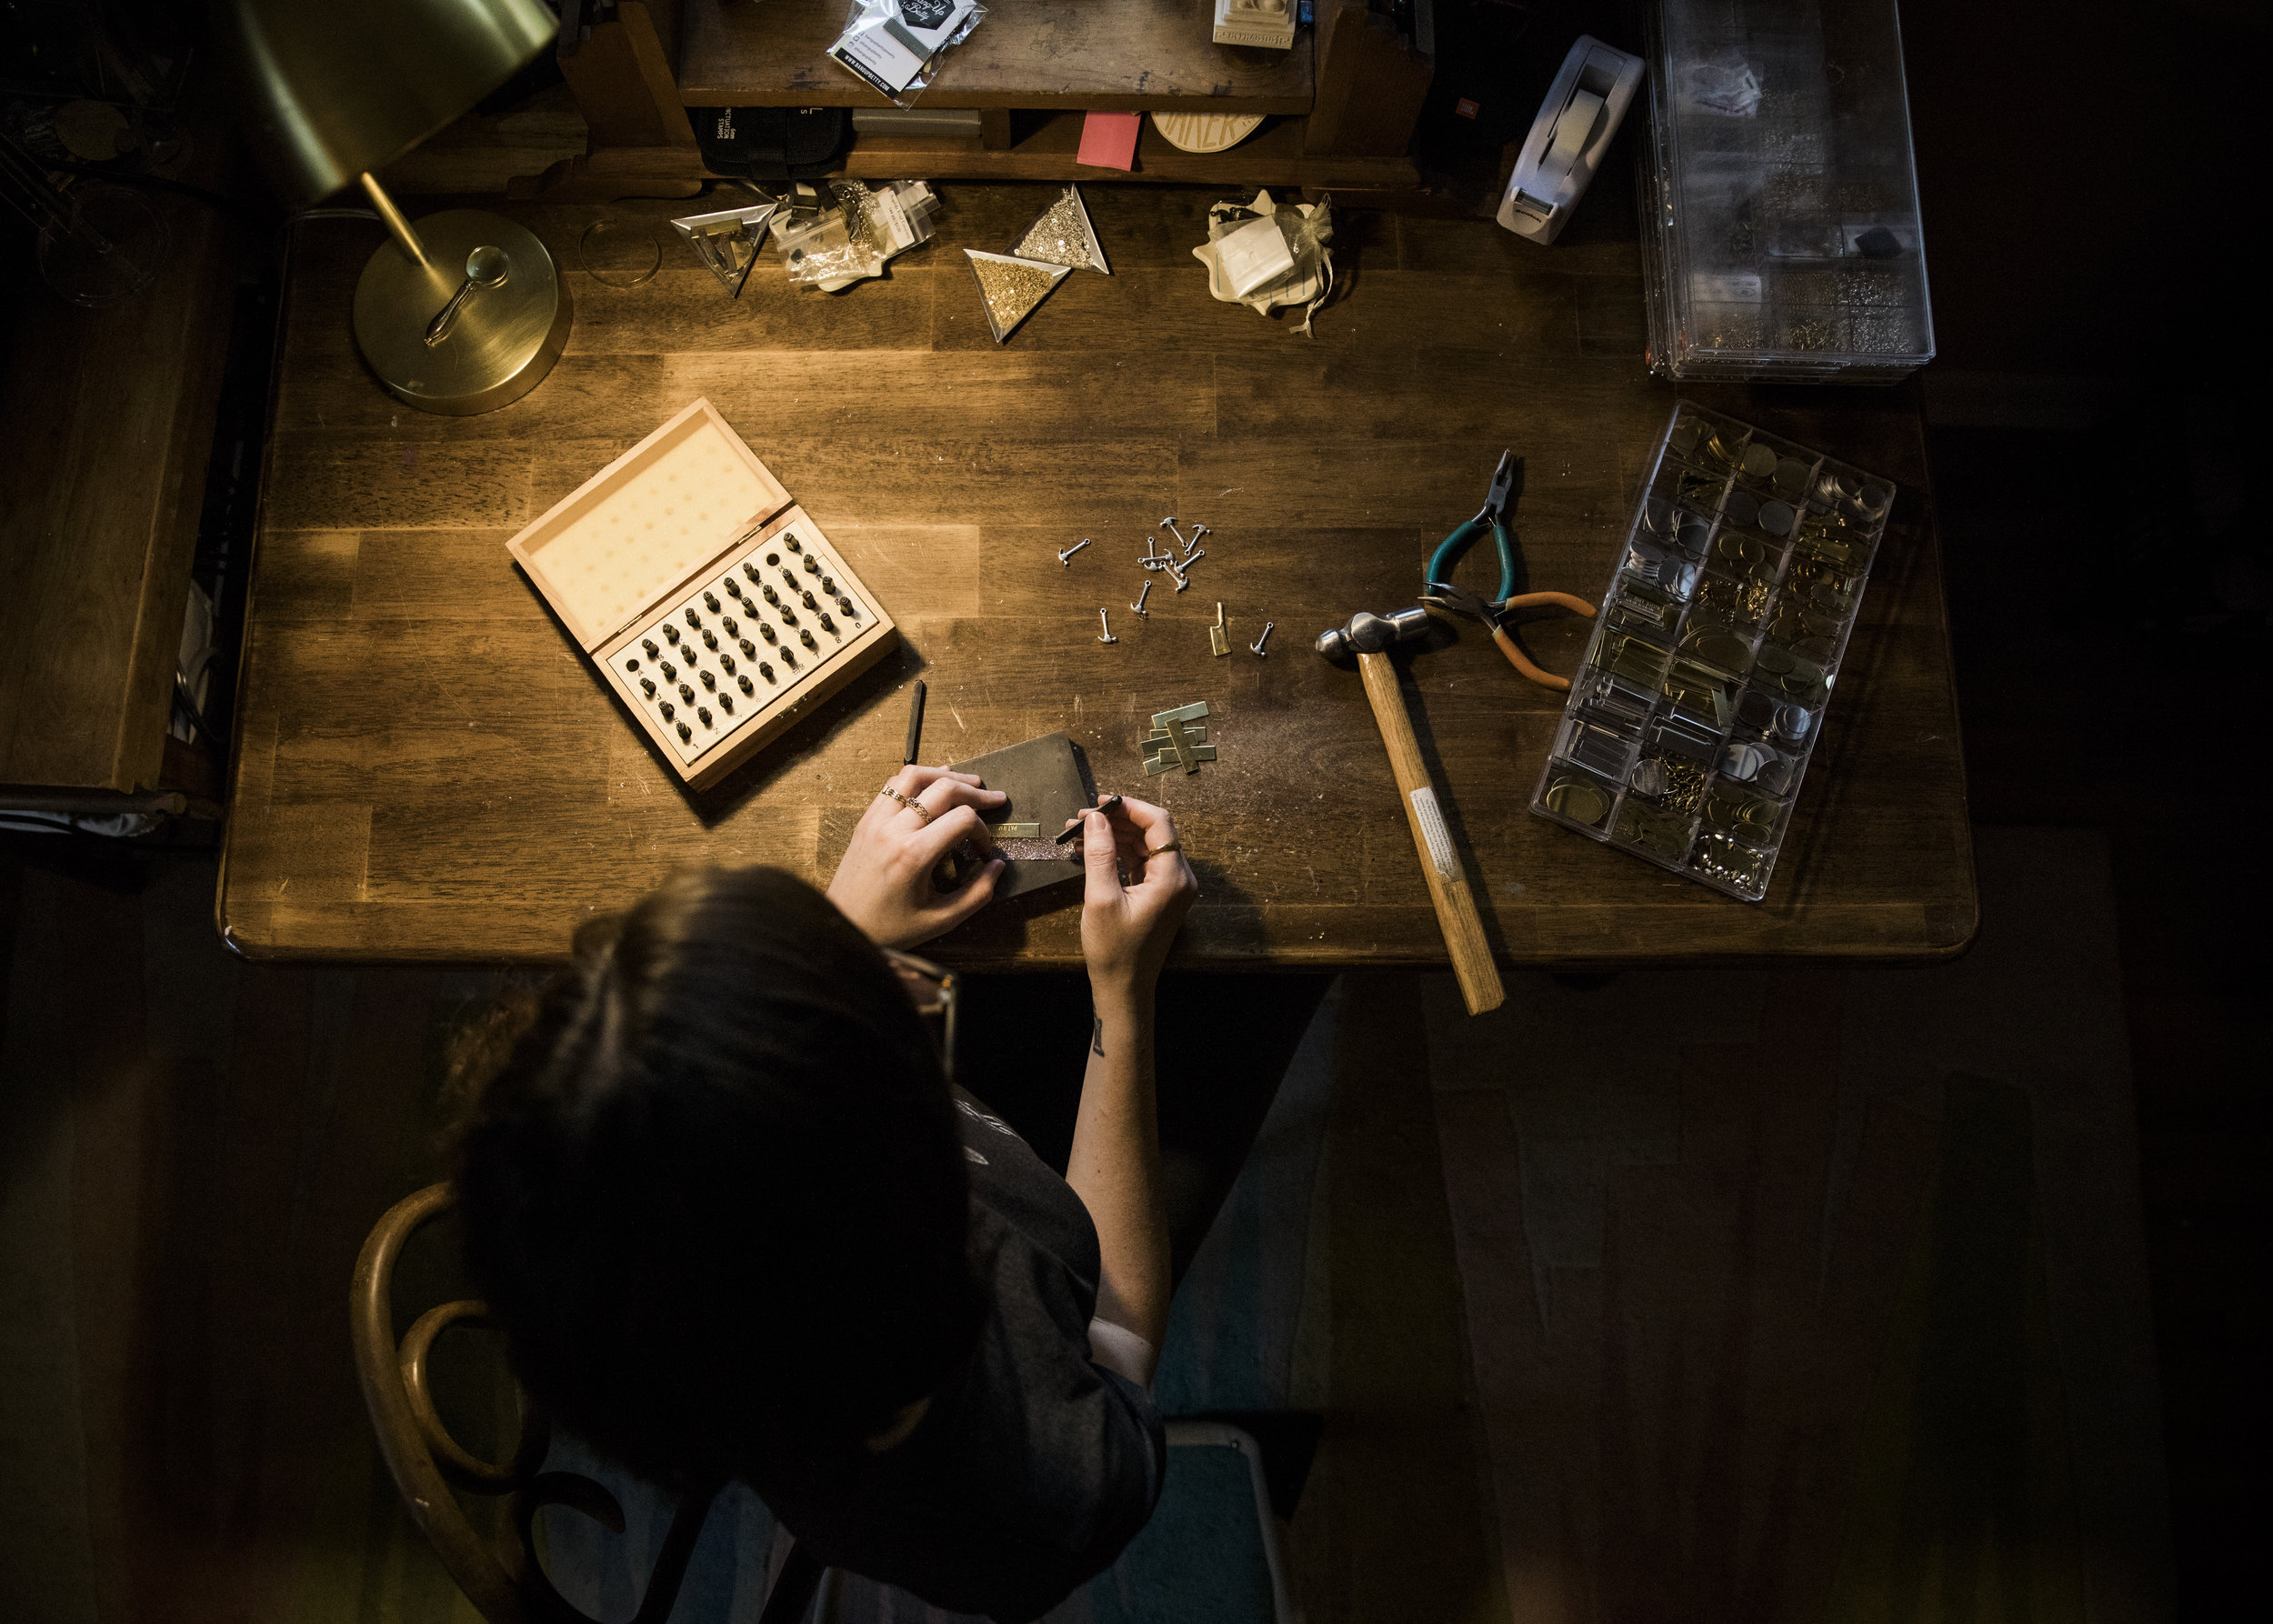 A glimpse inside the studio of artisan jewelry designer Bang-Up Betty, who will be stamping jewelry on location at two Little Rock boutiques in December.